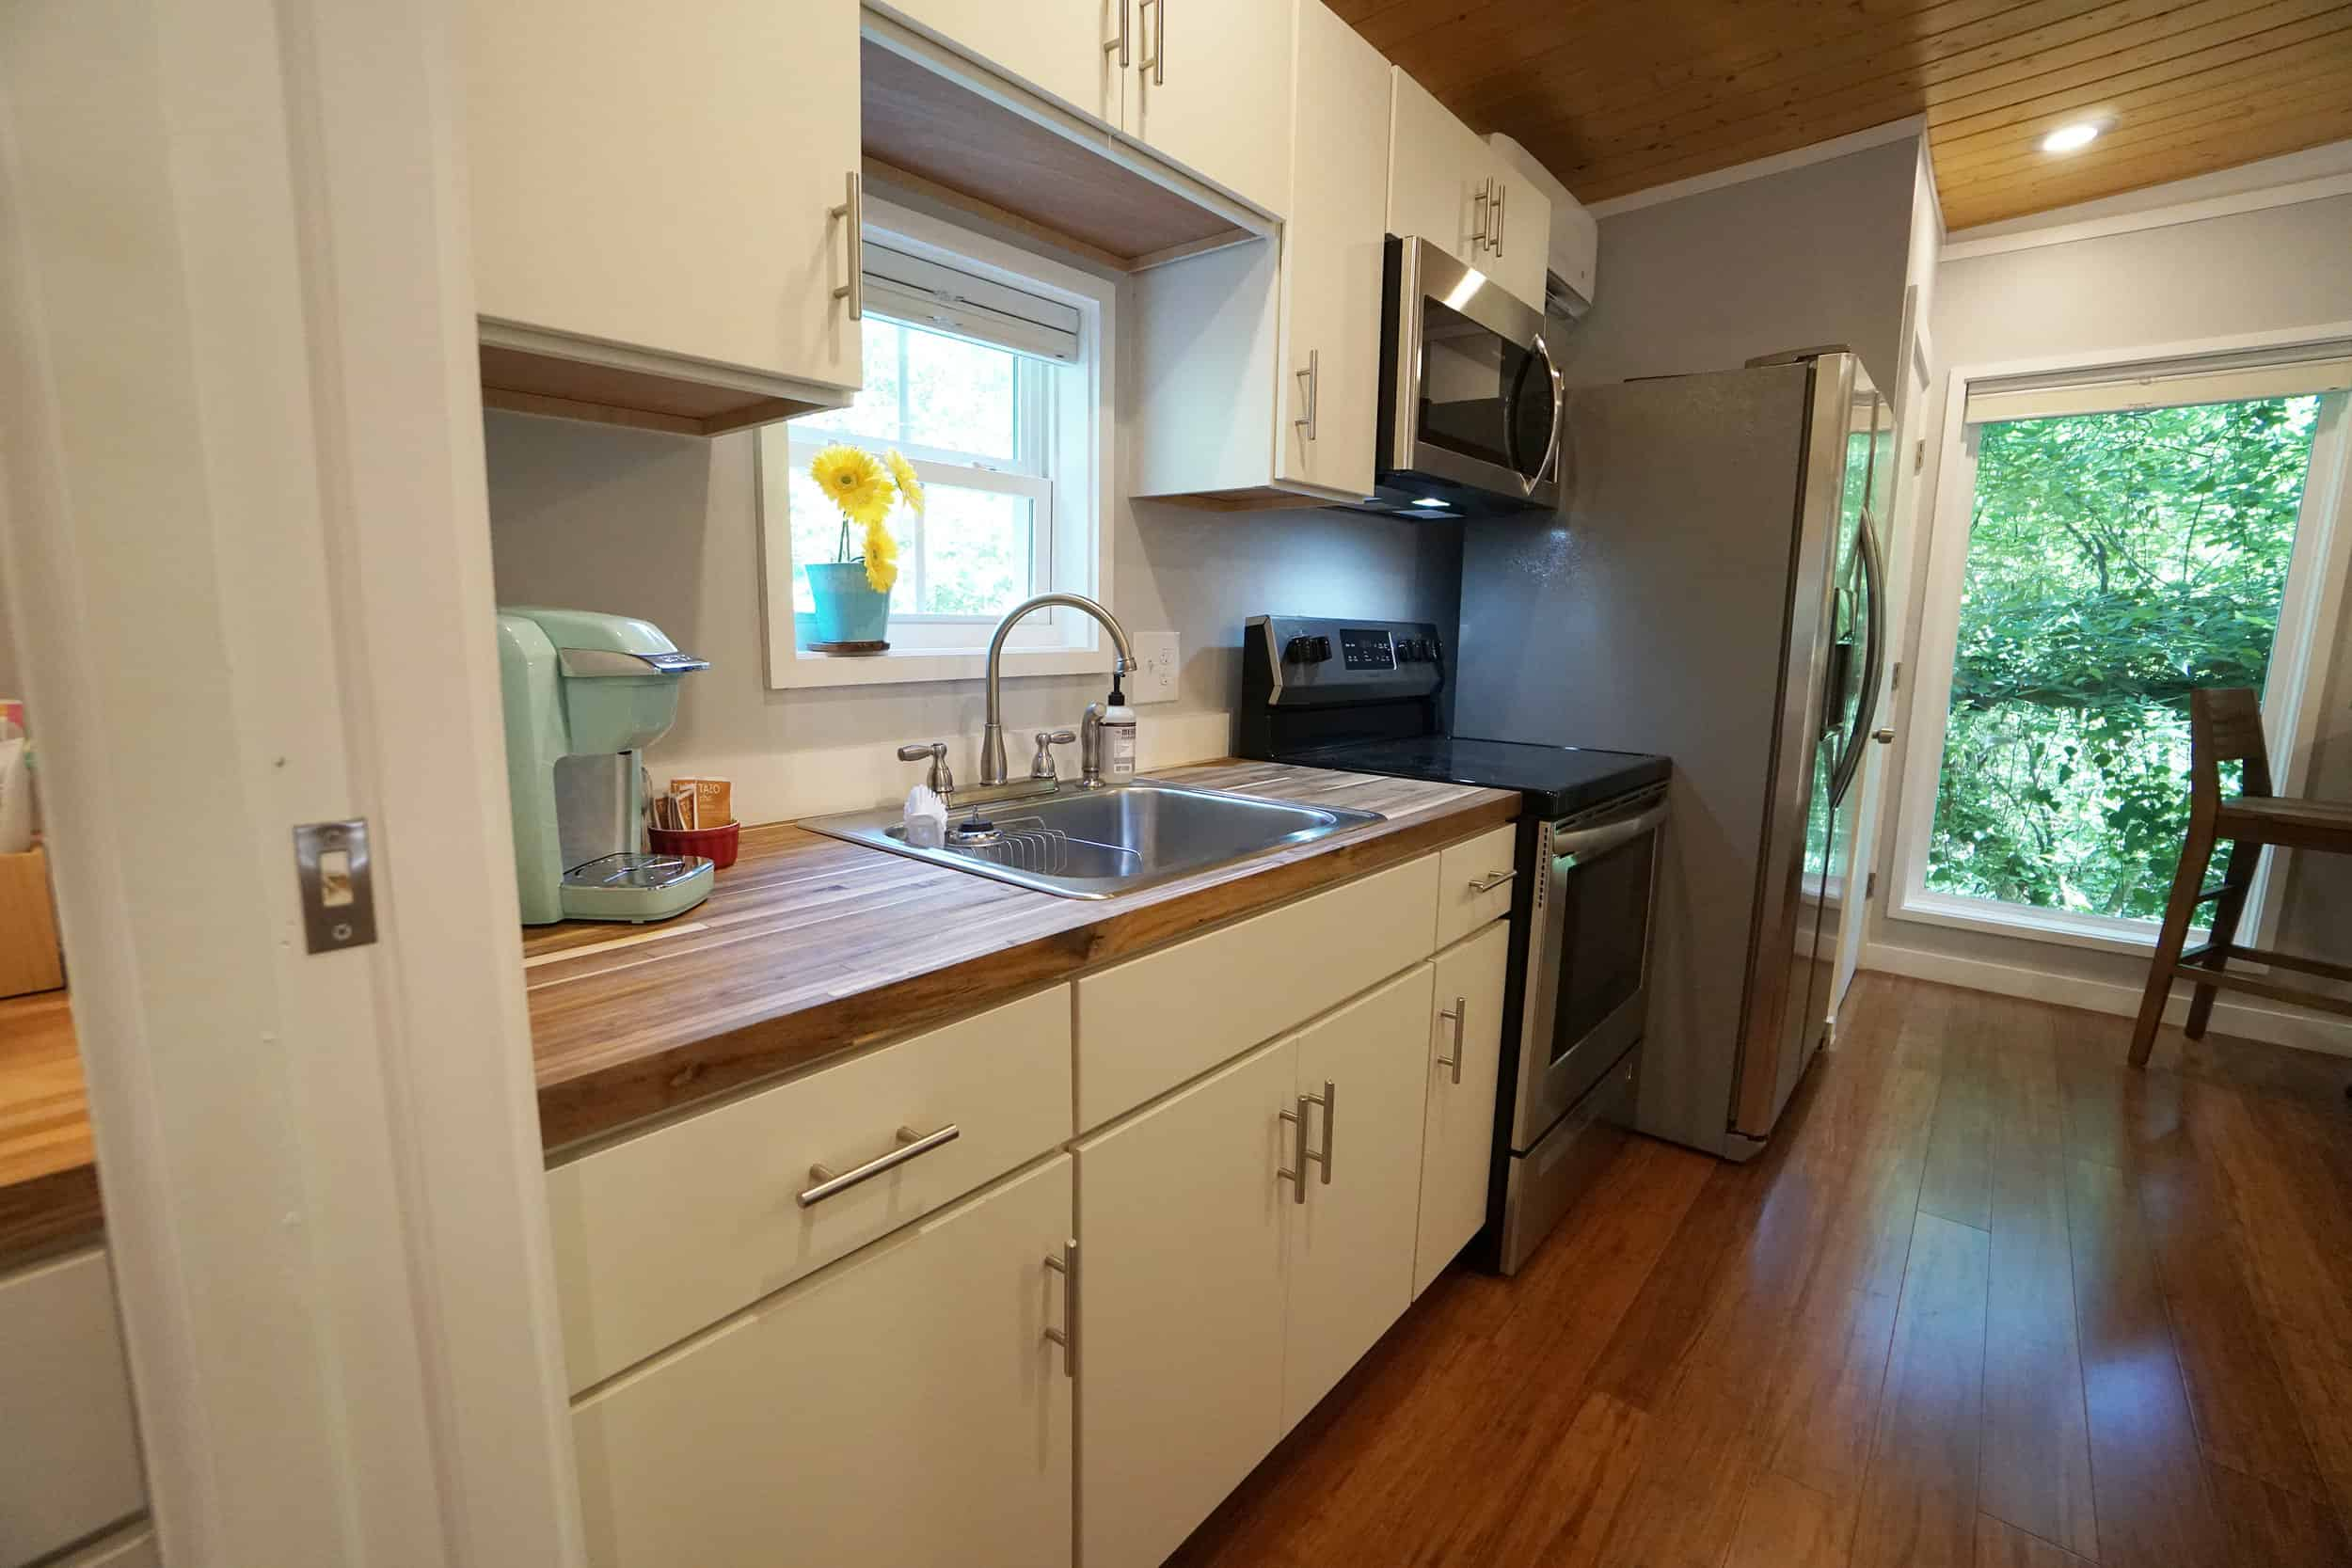 Beautiful prefab tiny home kitchen by Kanga Room Systems